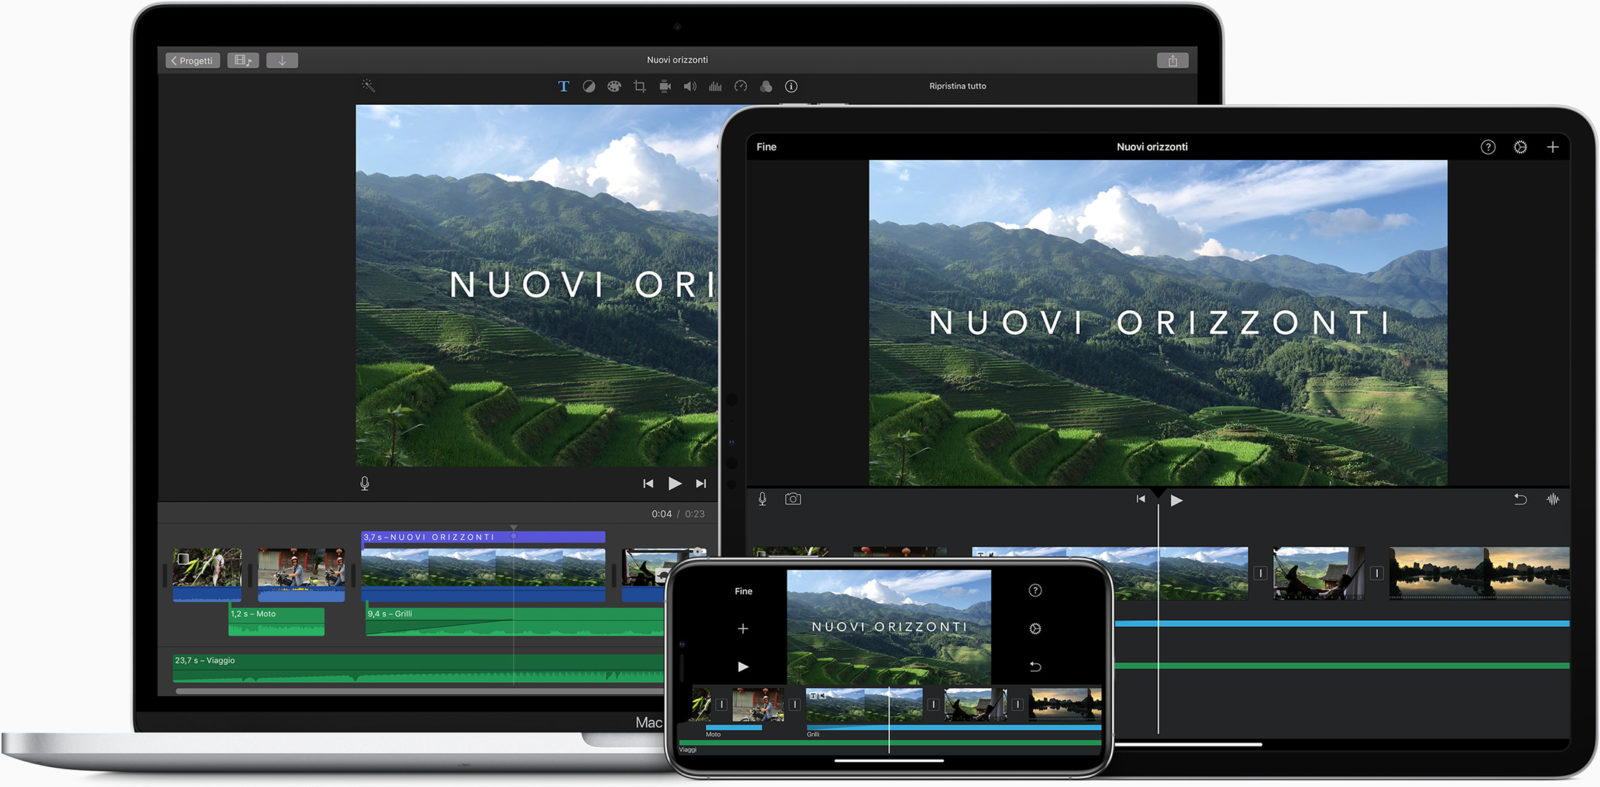 iMovie per iPad e iOS ora supporta unità di storage esterne